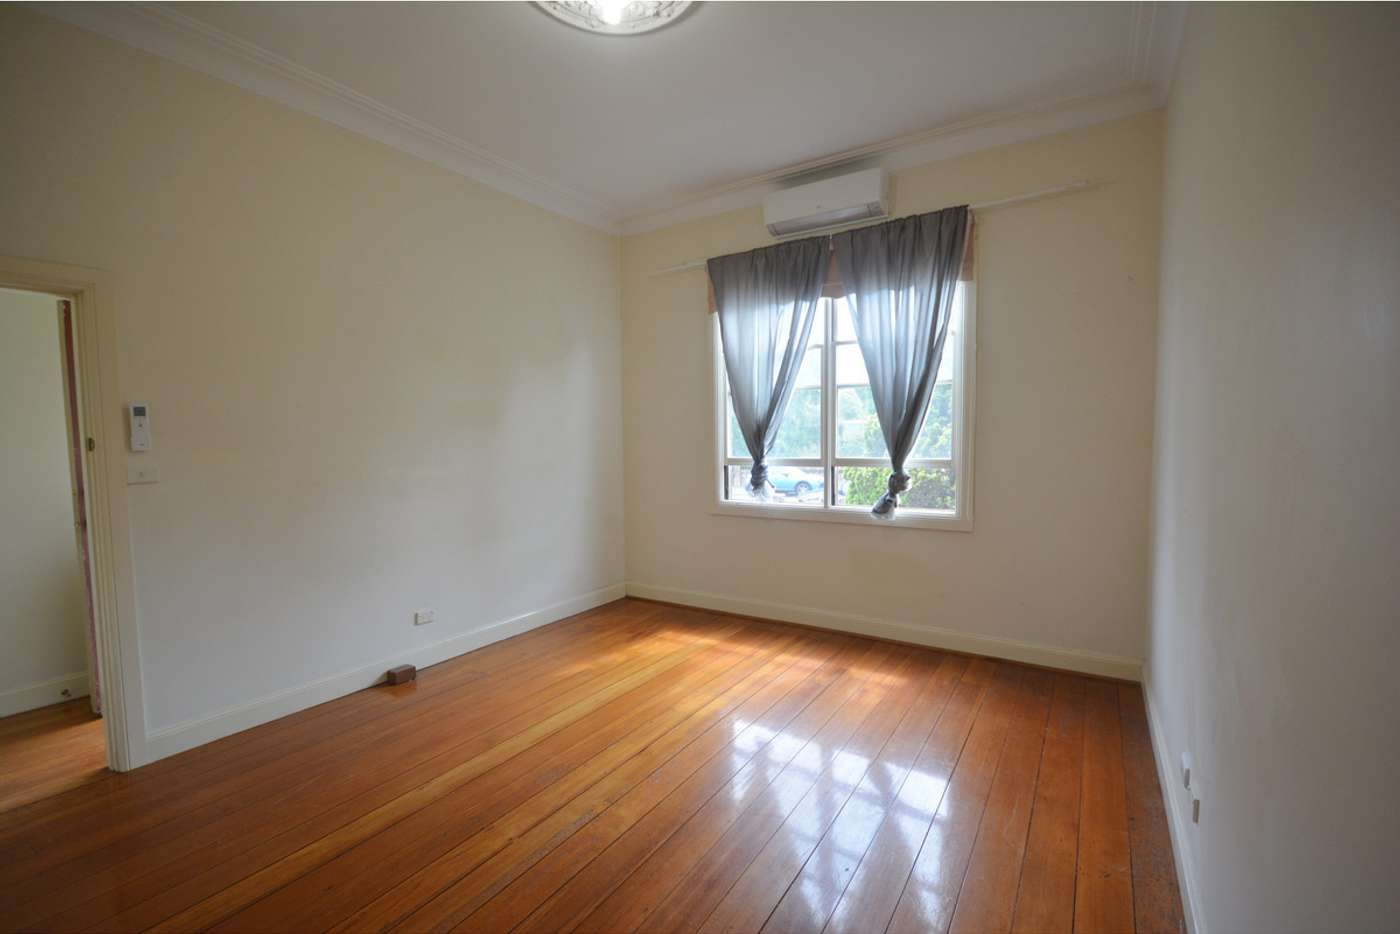 Seventh view of Homely house listing, 1/7-11 Merriwa Street, Katoomba NSW 2780